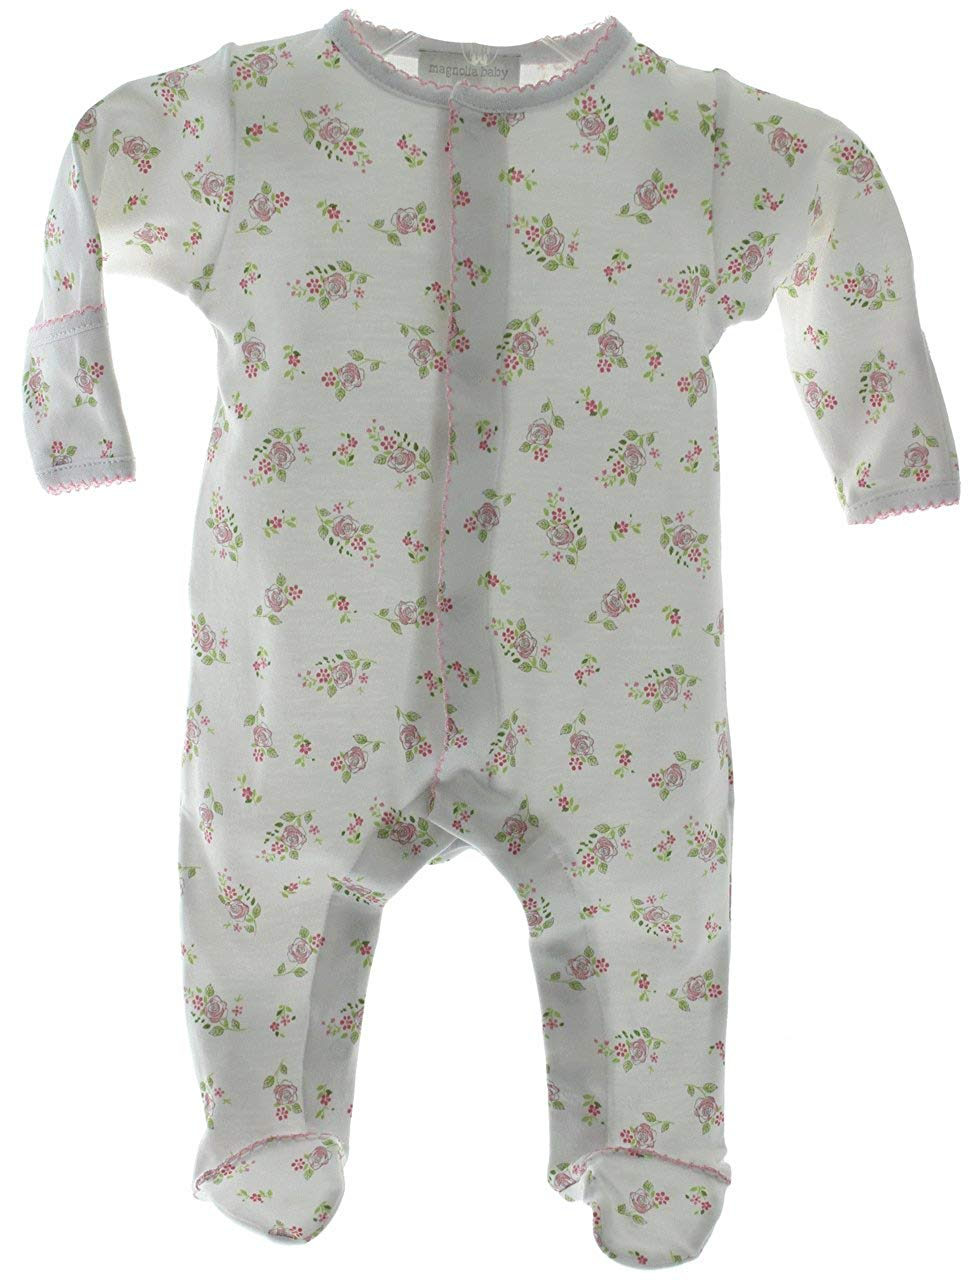 454d63c8199efc Get Quotations · Magnolia Baby Girls White Floral Printed Take Home Footed  Sleeper Layette Outfit